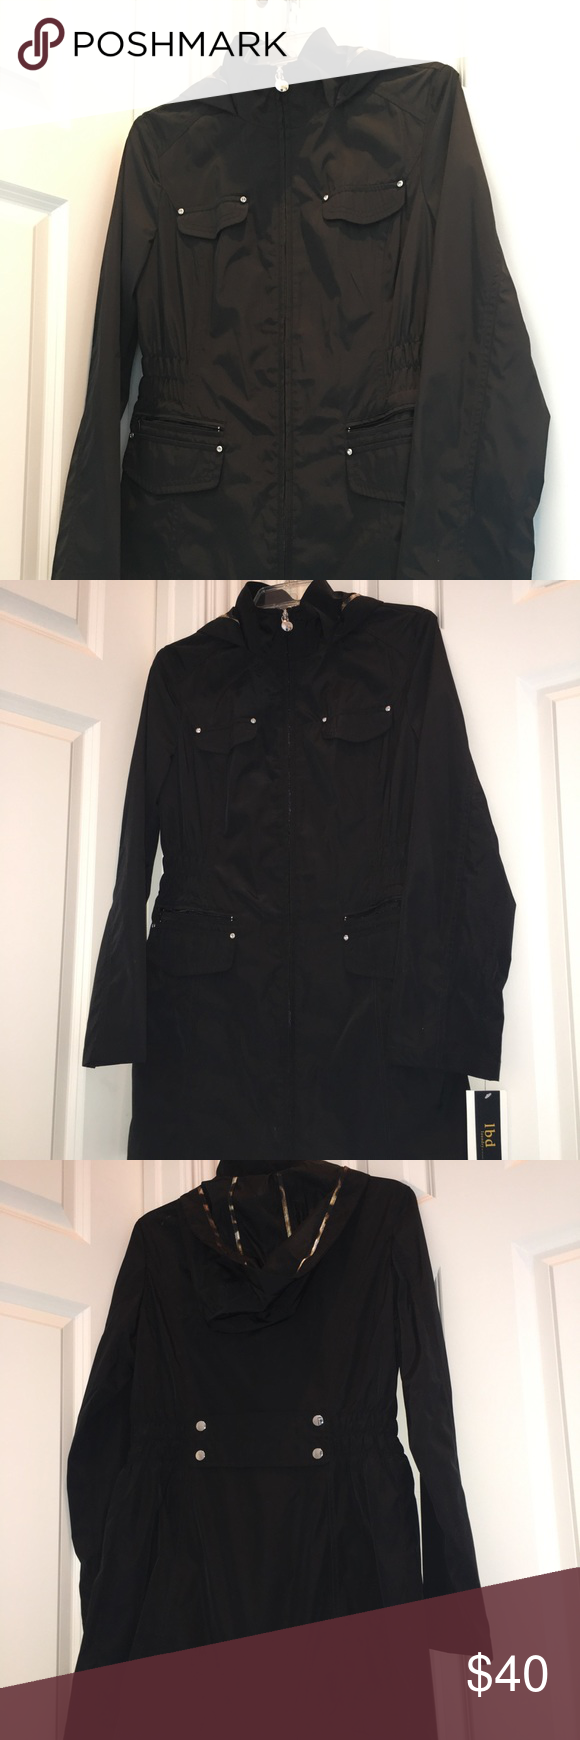 Jacket Laundry By Design Lbd Nwt With Images Jackets Clothes Design Hooded Raincoat